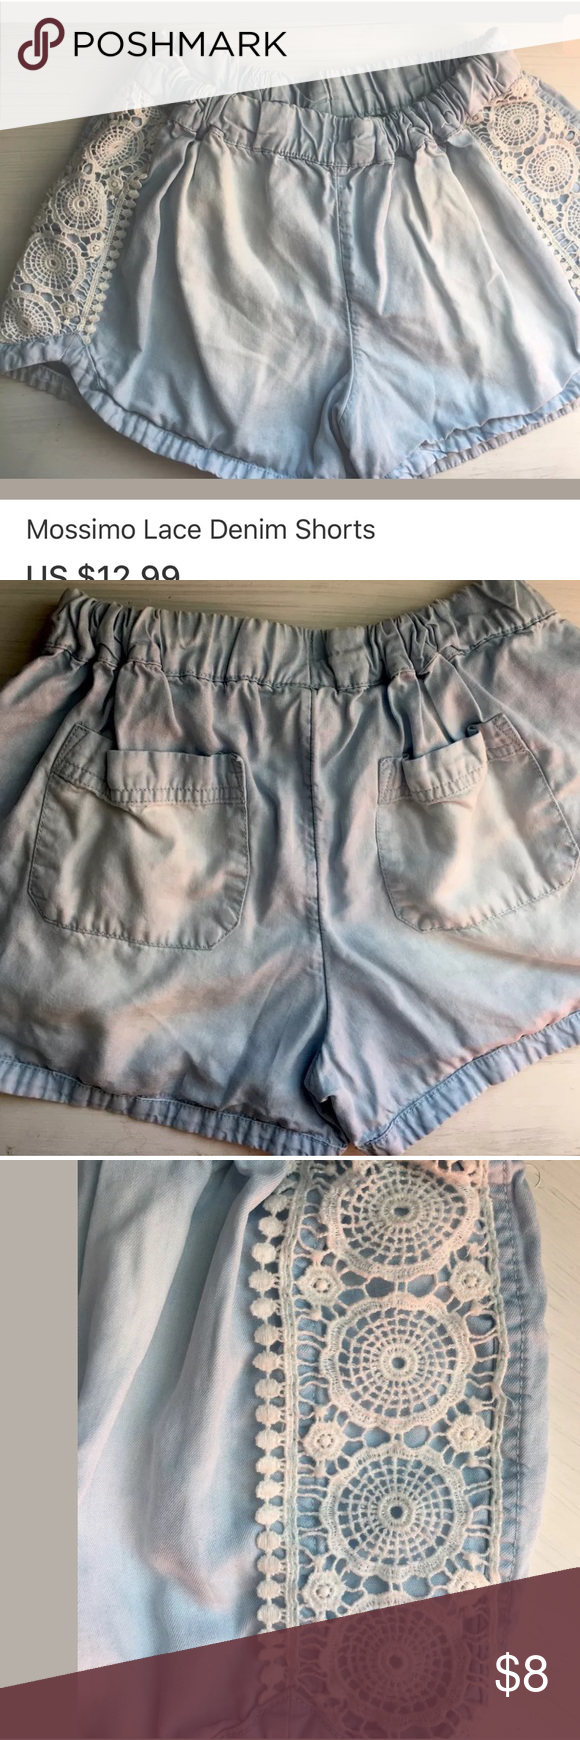 Mossimo Shorts Lace Detail Size Small GUC-Size Small Mossimo Supply Co Shorts